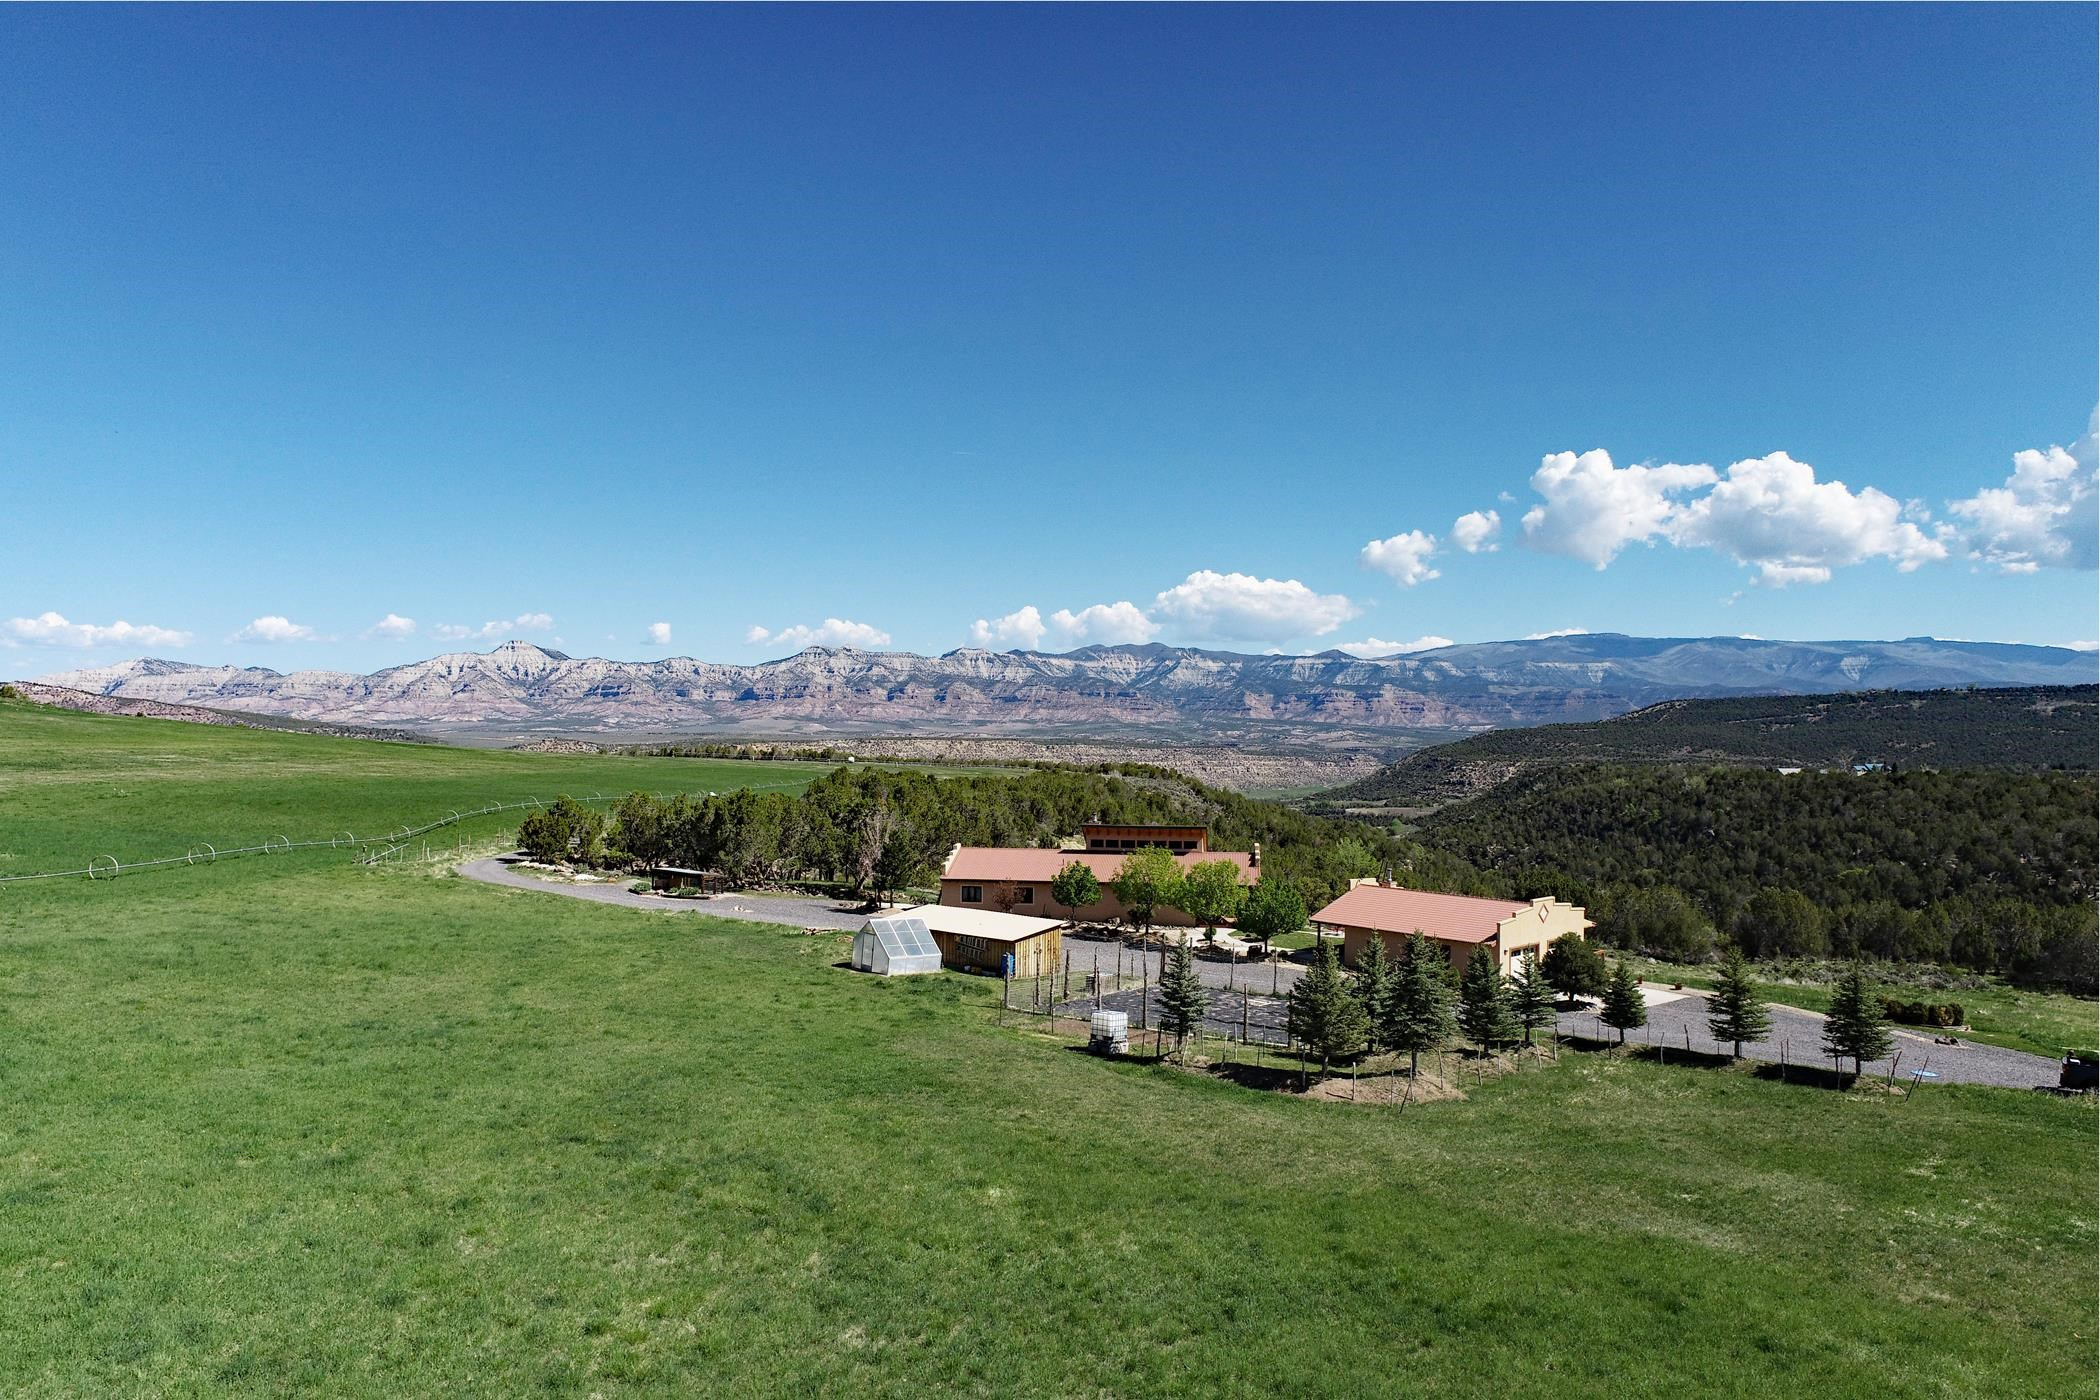 345+ acre mountain ranch with irrigation, spring, side roll, pivots, hay/grass crop and pasture, pond, green house, equipment shed, stack yard and garden area. BLM borders two sides of property with deeded access and a grazing permit is included. Custom built with ICF construction 3048 sq ft 3 bd, 3 bath home. Travertine tiled floors and carpet throughout. Spacious gourmet kitchen with granite countertops, maple cabinets, stainless steel appliances, huge pantry, and breakfast bar. Quality craftsmanship with vaulted wood ceilings, rock fireplace and in floor radiant heat all add to the deep warmth of the living space. Amazing mountain, valley views and terrific hunting property in Unit 421. Double car garage is attached to the guest house. Offer your guests a retreat with wood stove, efficiency kitchen, kegerator, ¾ bath. Come enjoy this private sanctuary.